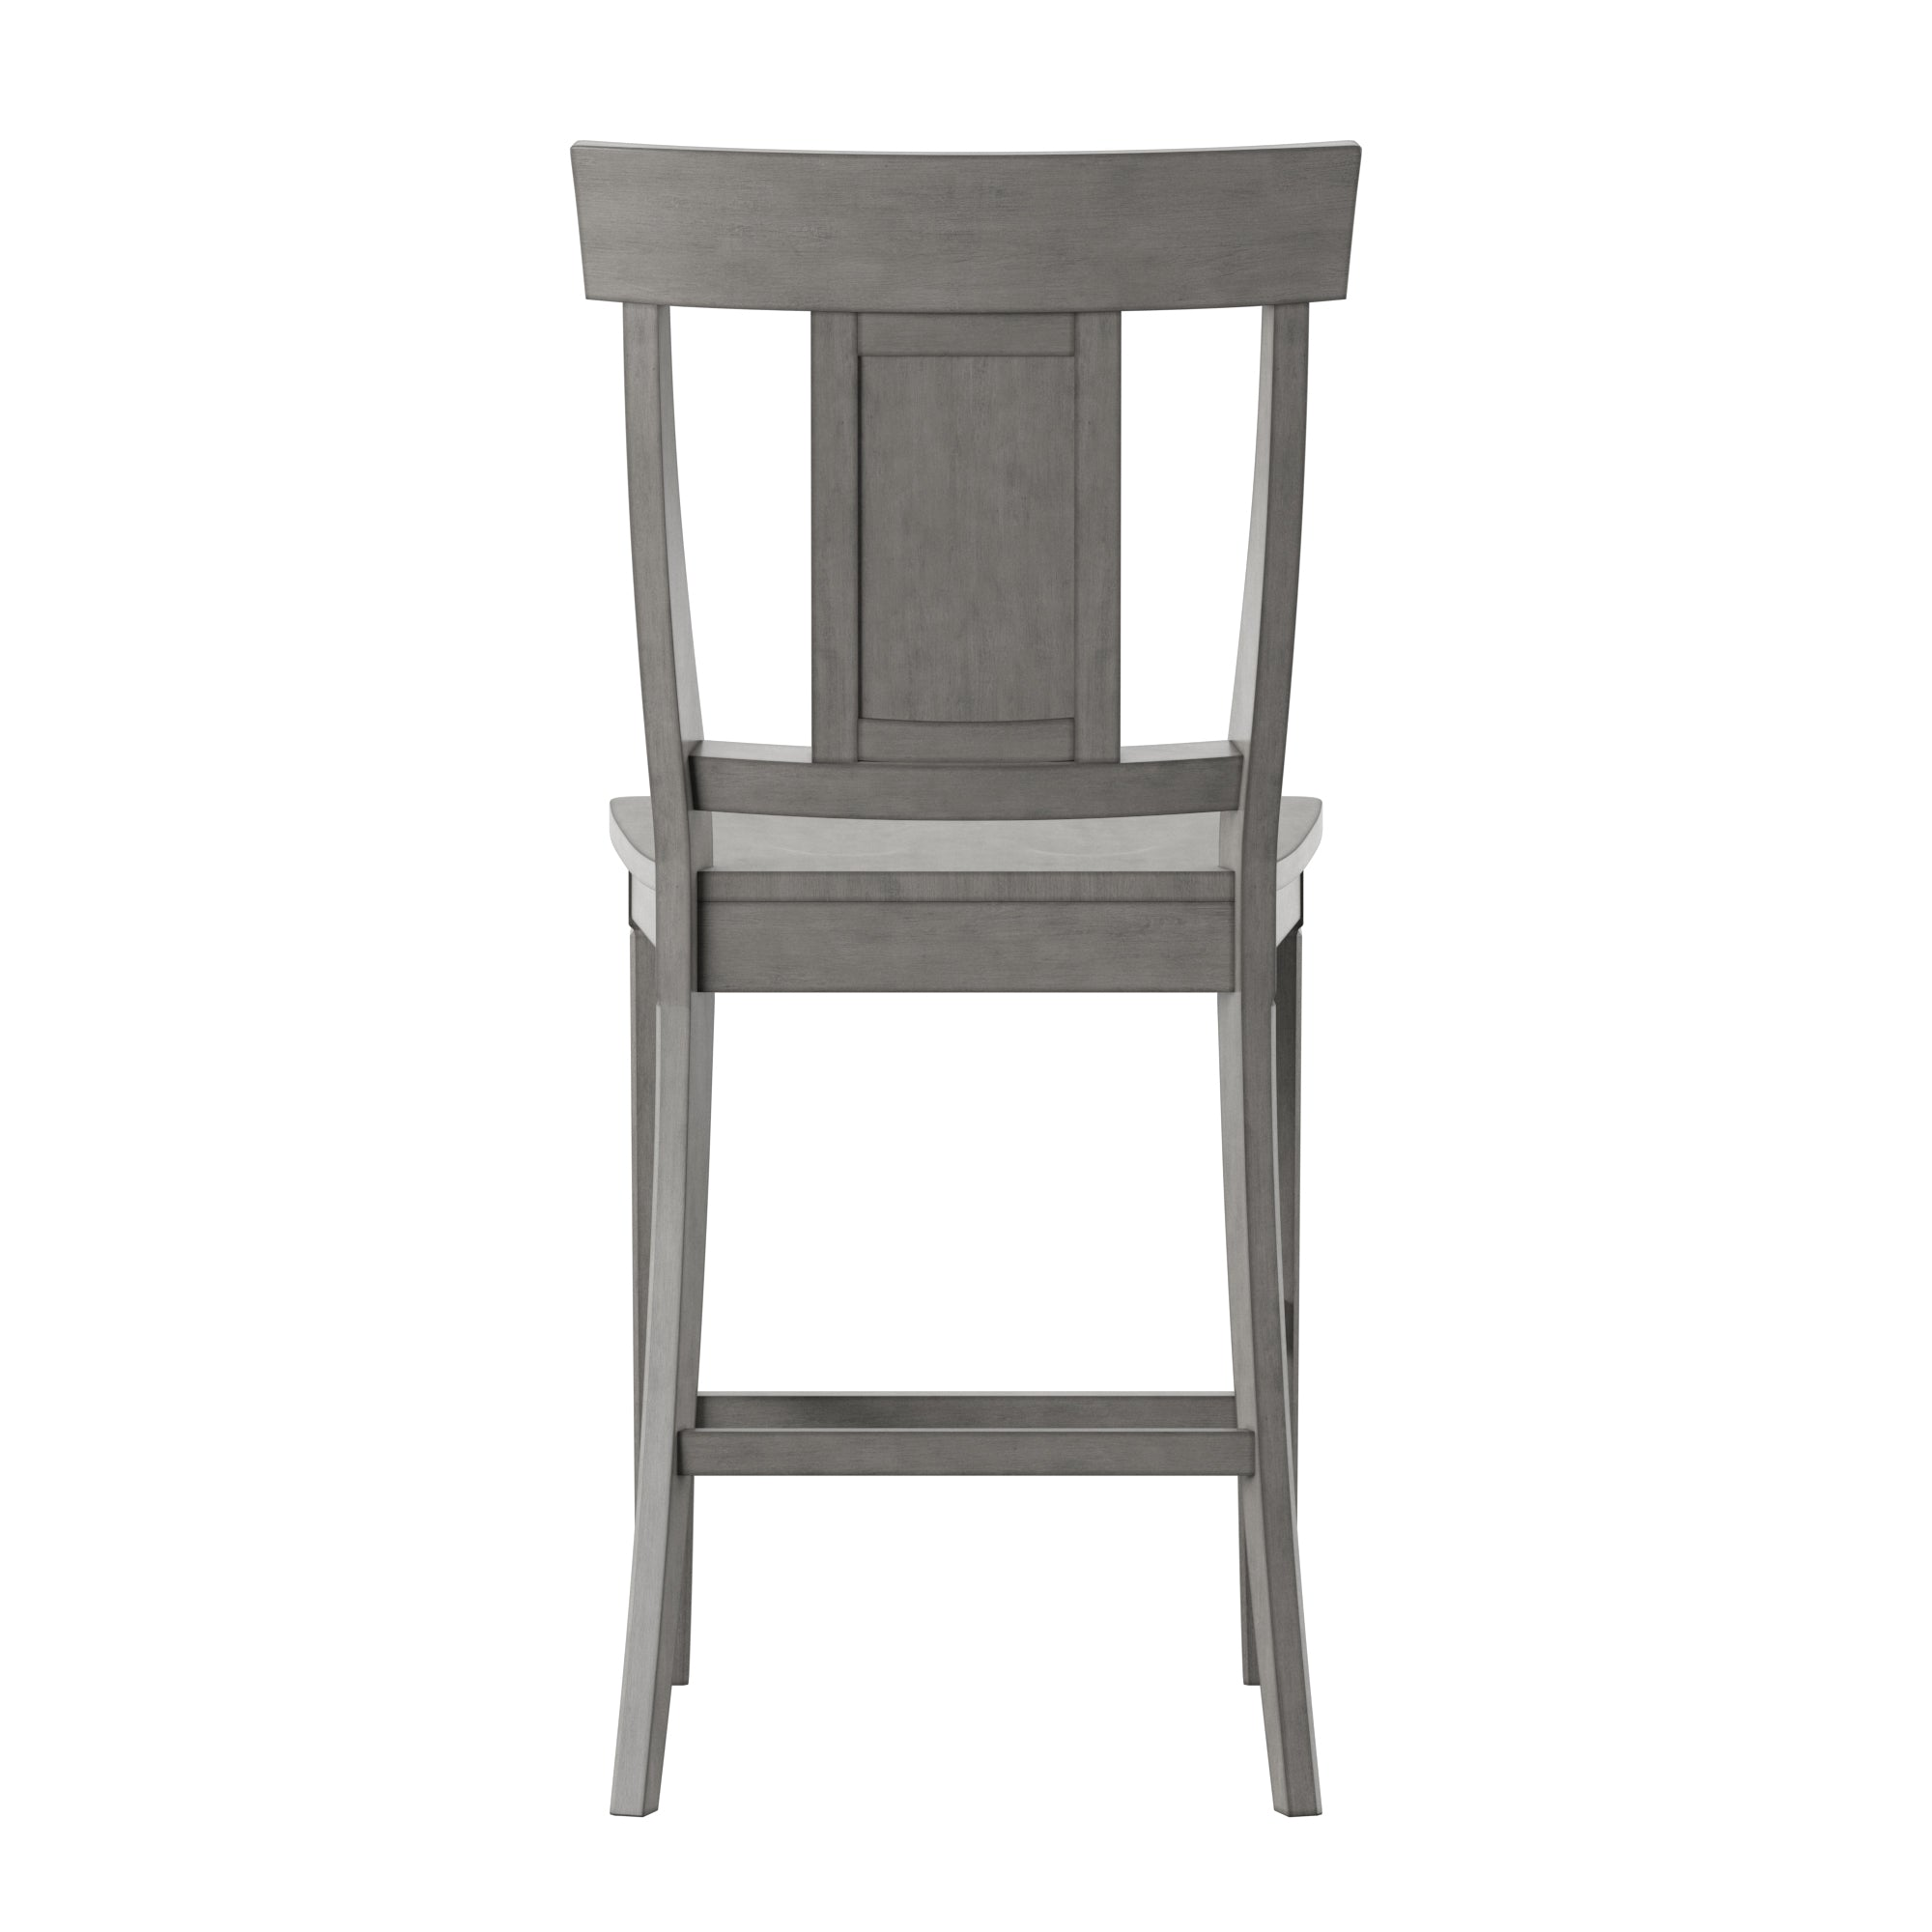 Panel Back Wood Counter Height Chairs (Set of 2) - Antique Grey